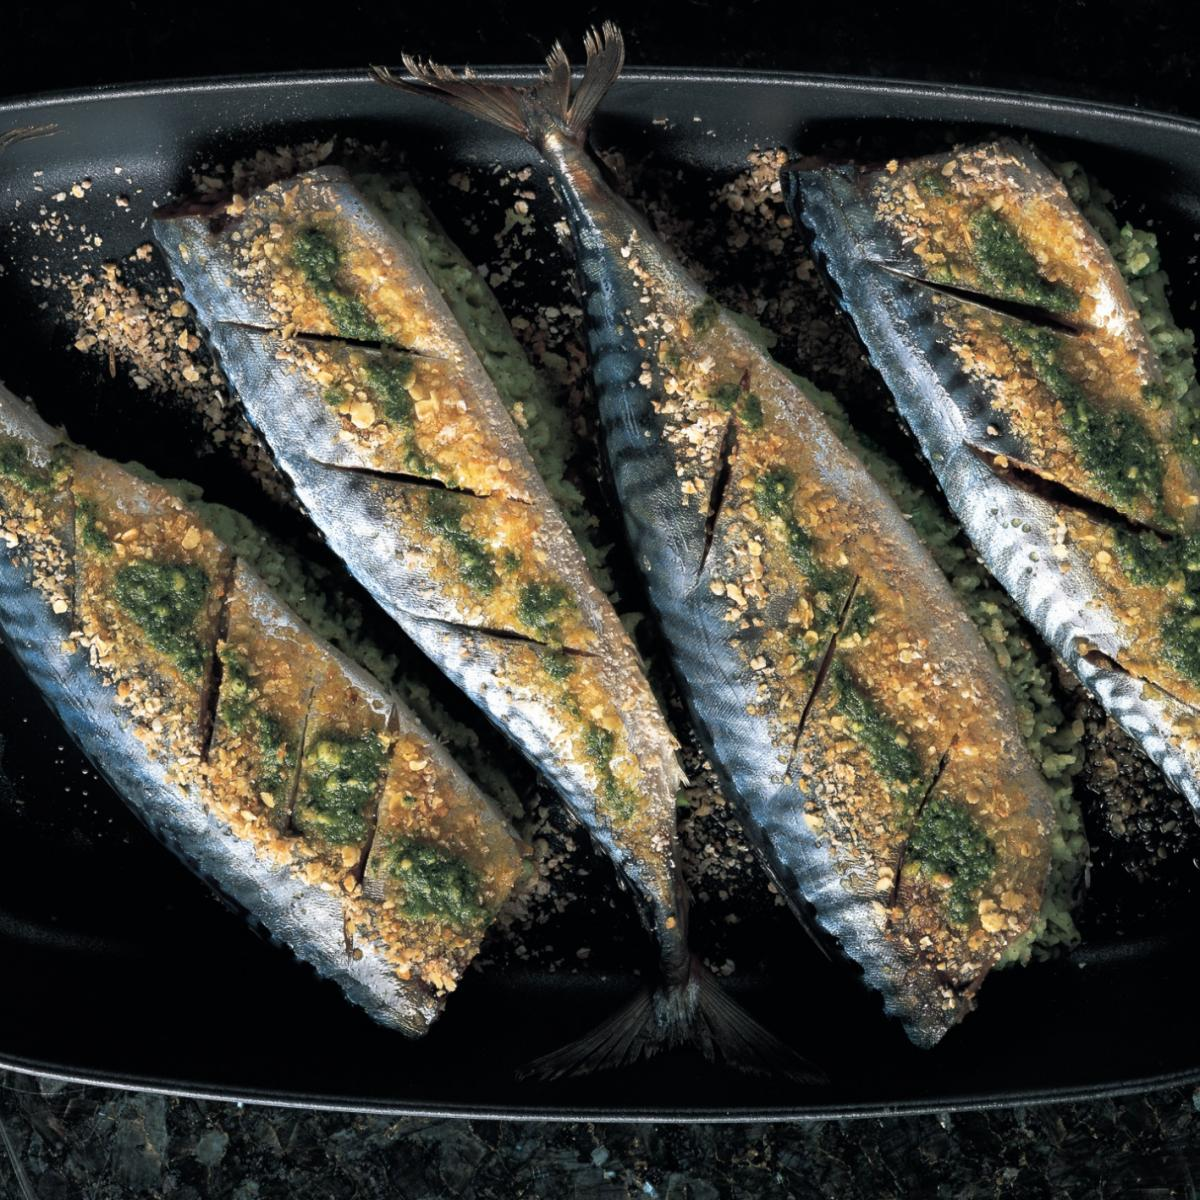 Fish oven baked mackerel stuffed with pesto mash